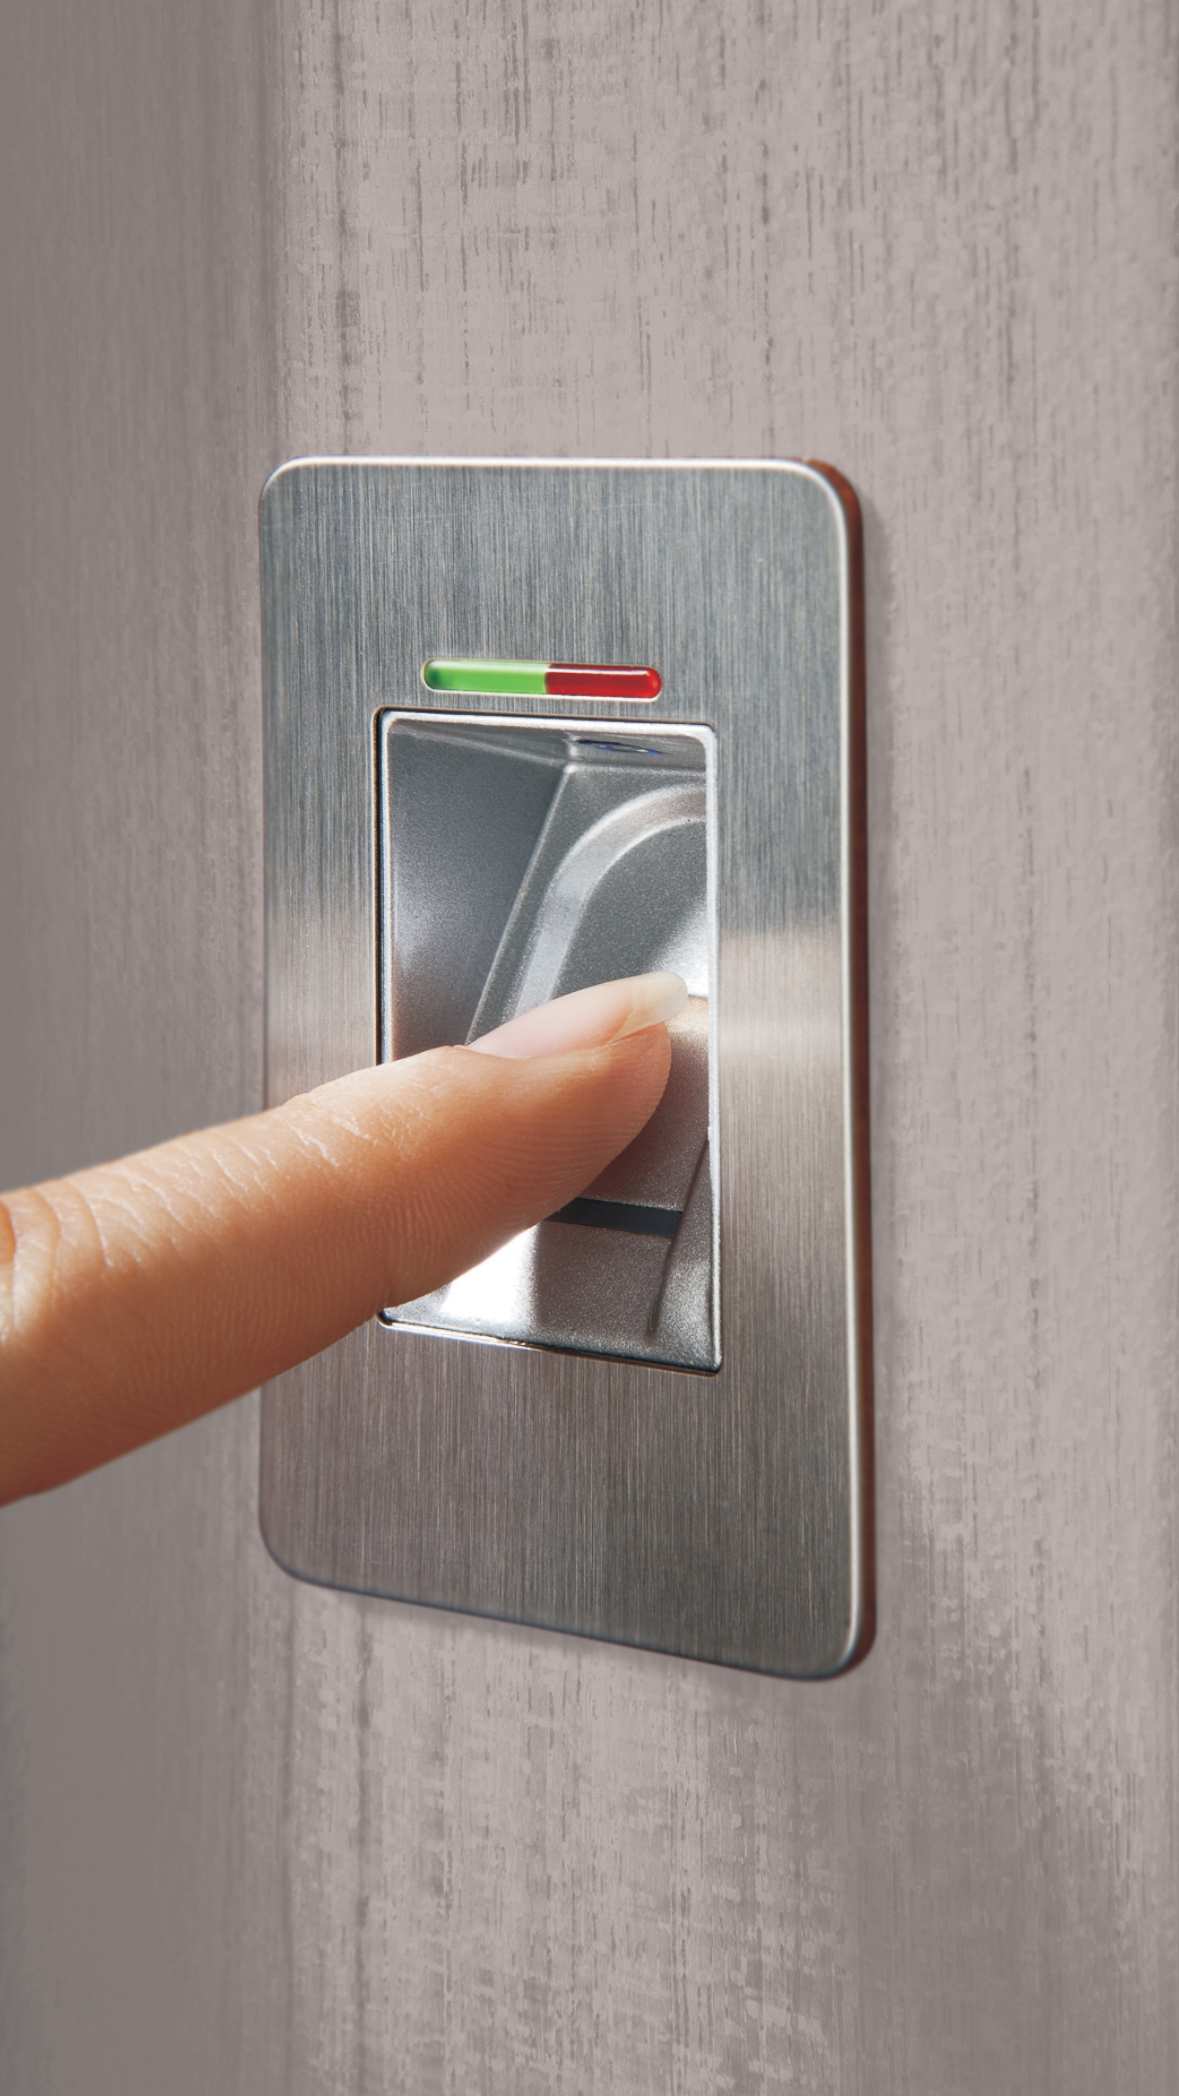 Entry Door Fingerprint Scanner